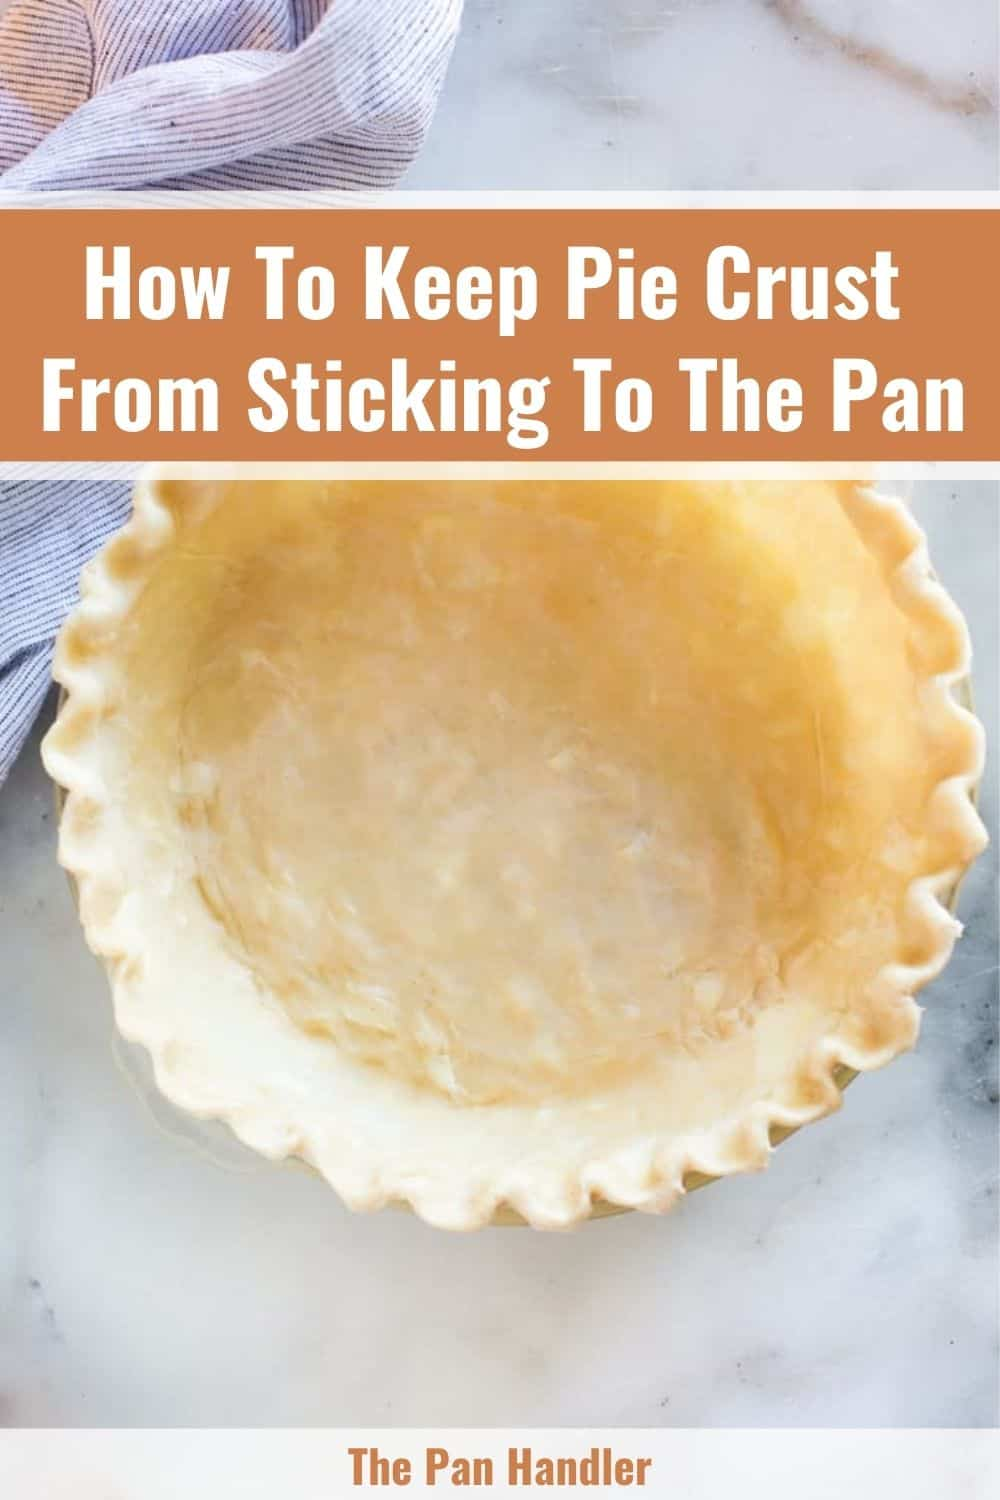 how to keep pie crust from sticking to pan